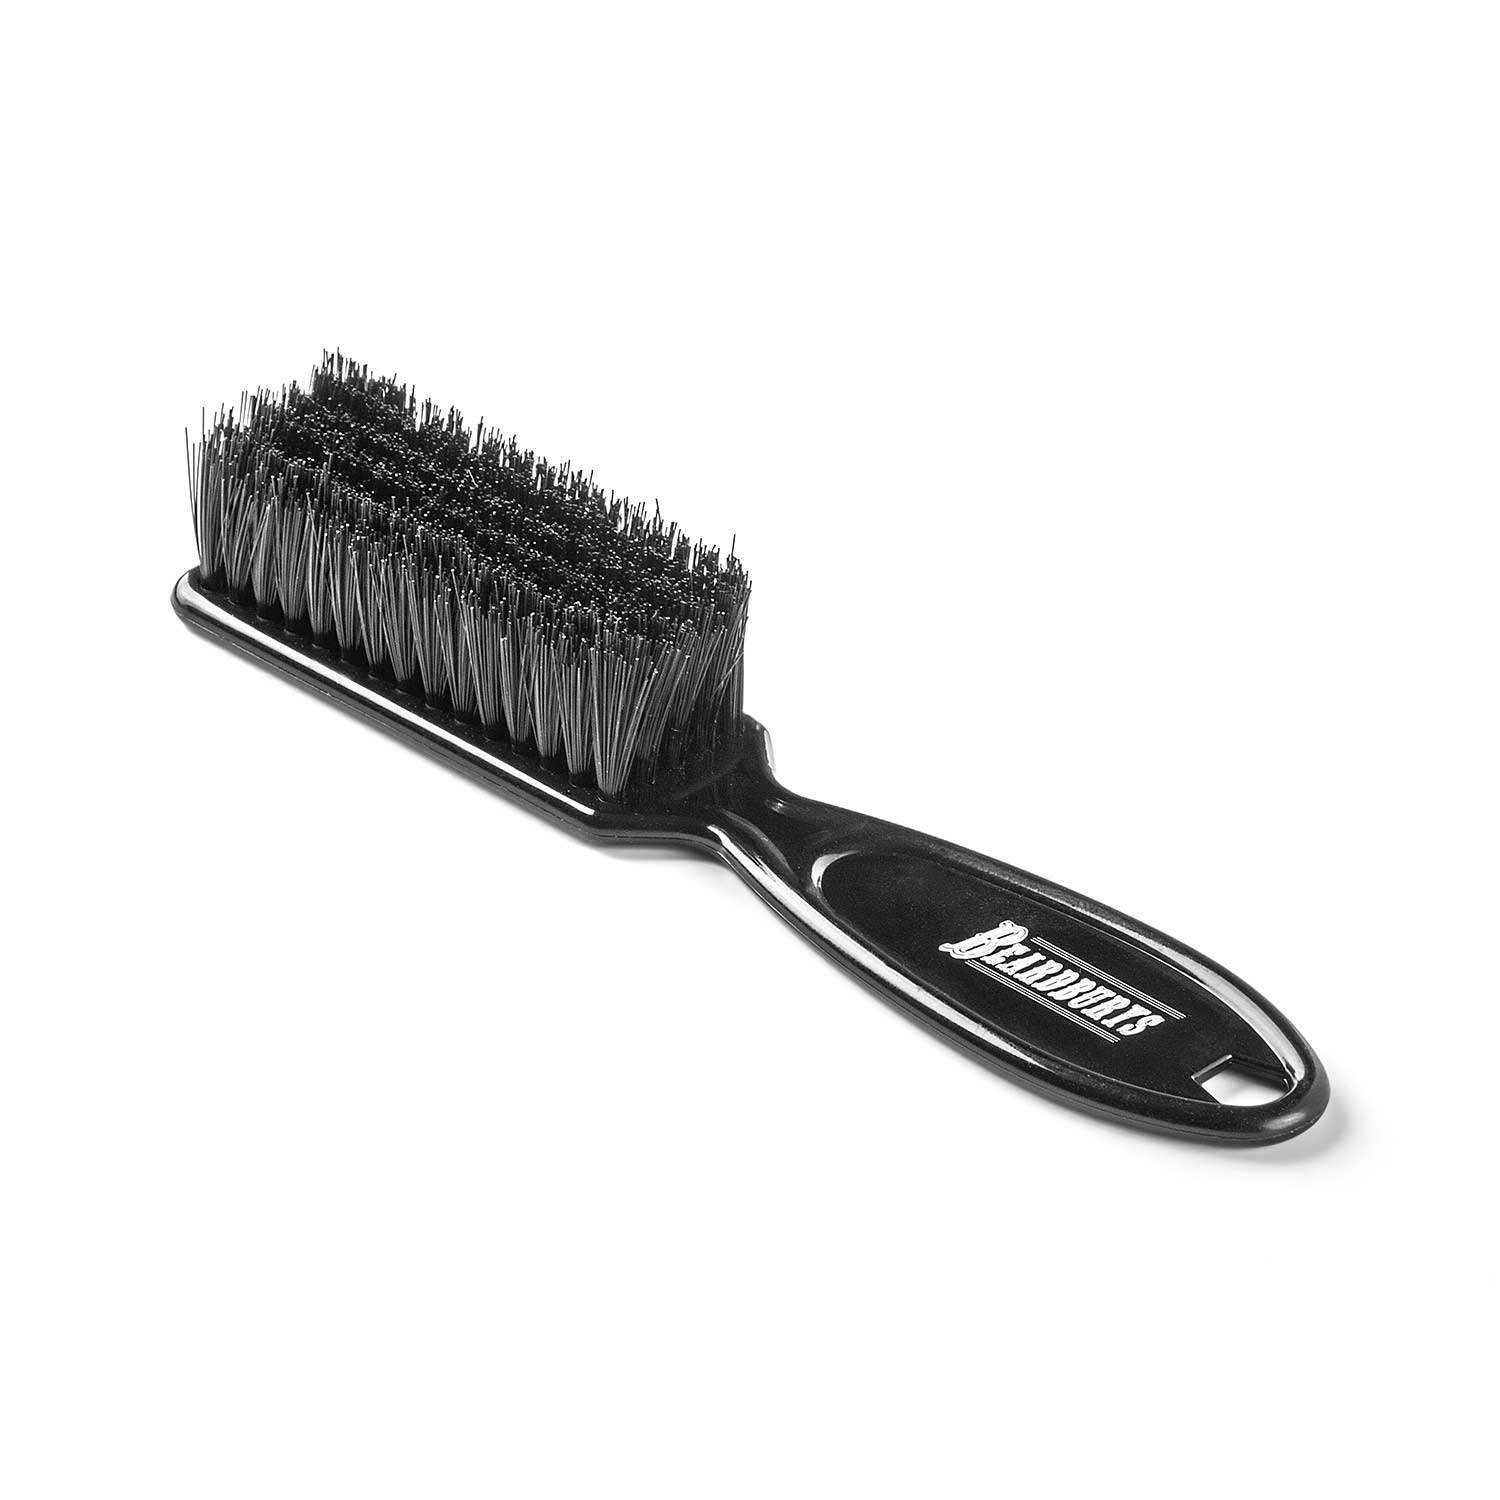 barberburste-beardburys-fade-pro-brush